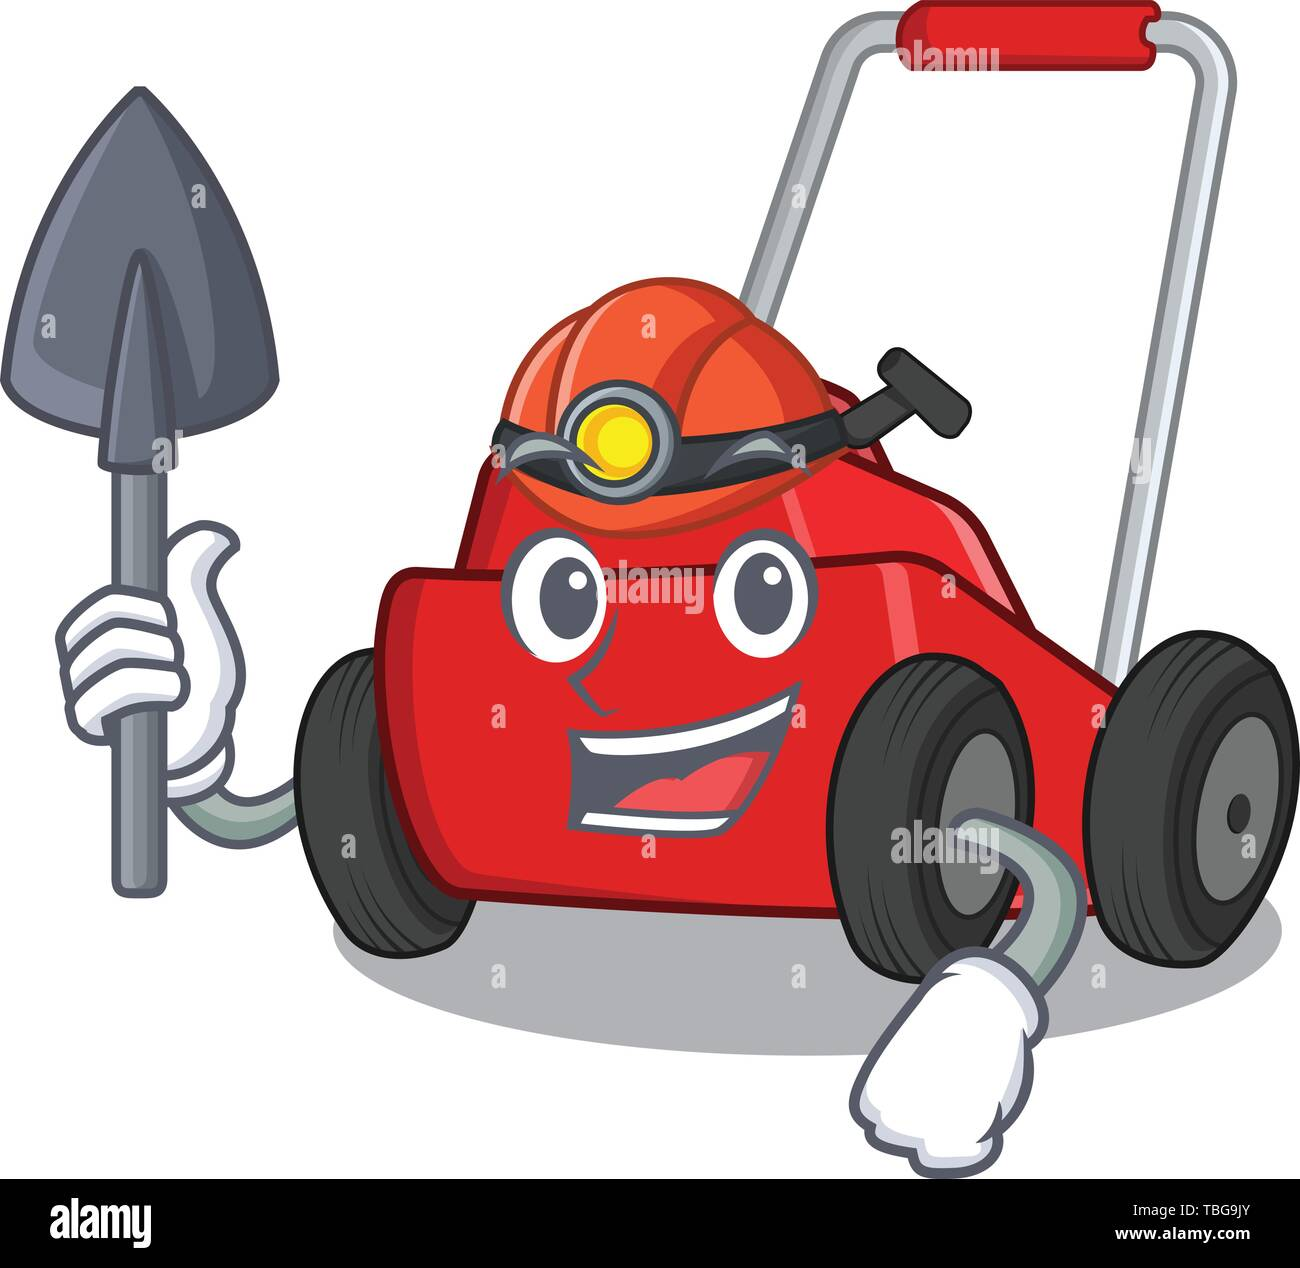 Miner lawnmower toys in the character shape - Stock Image